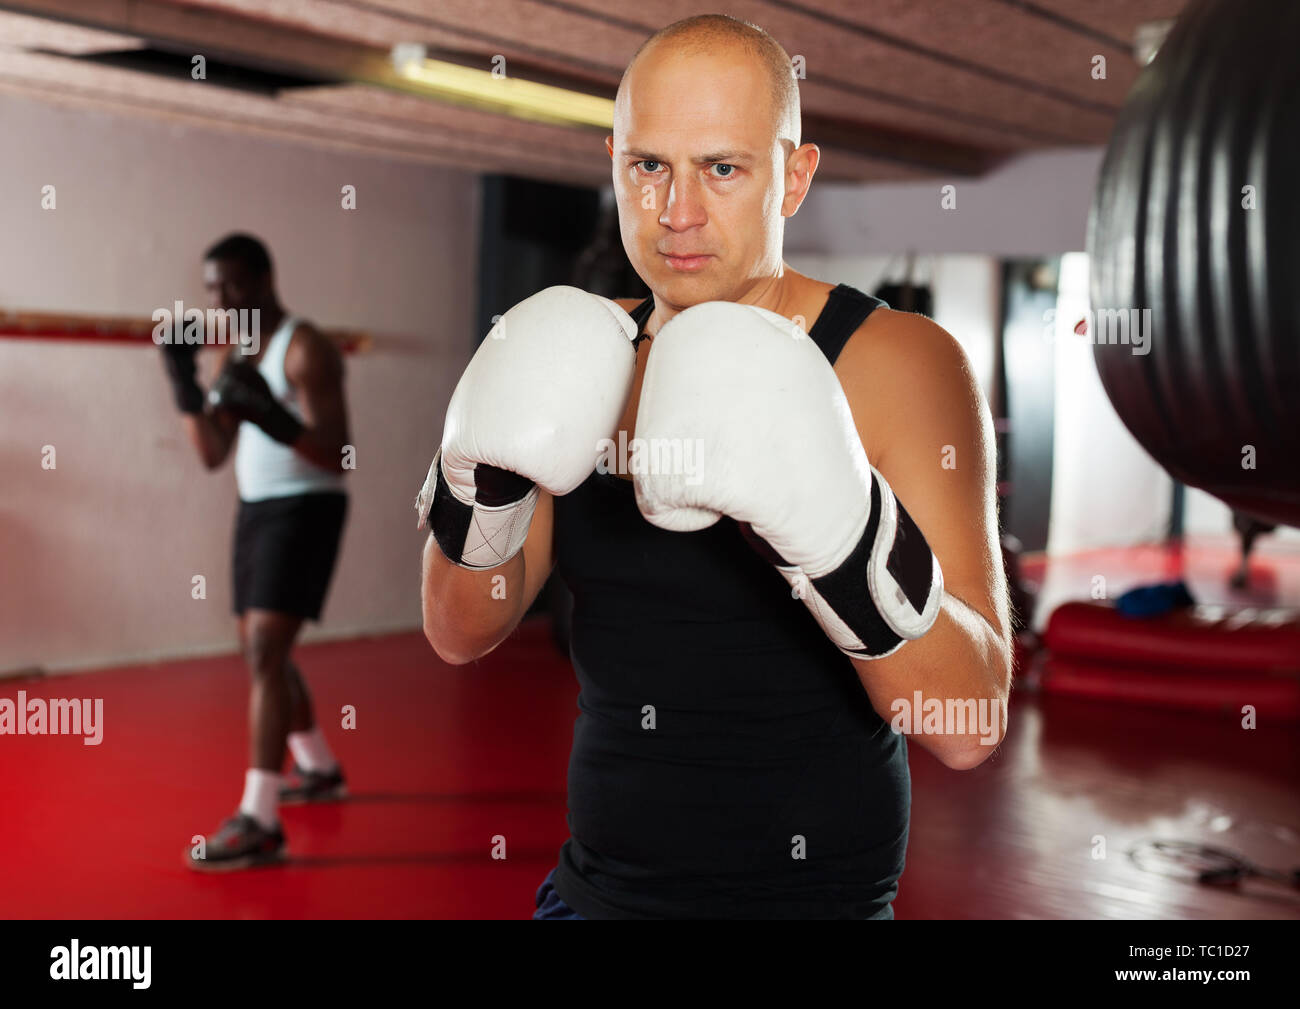 Potrait of active adut man boxer who is training in gym - Stock Image